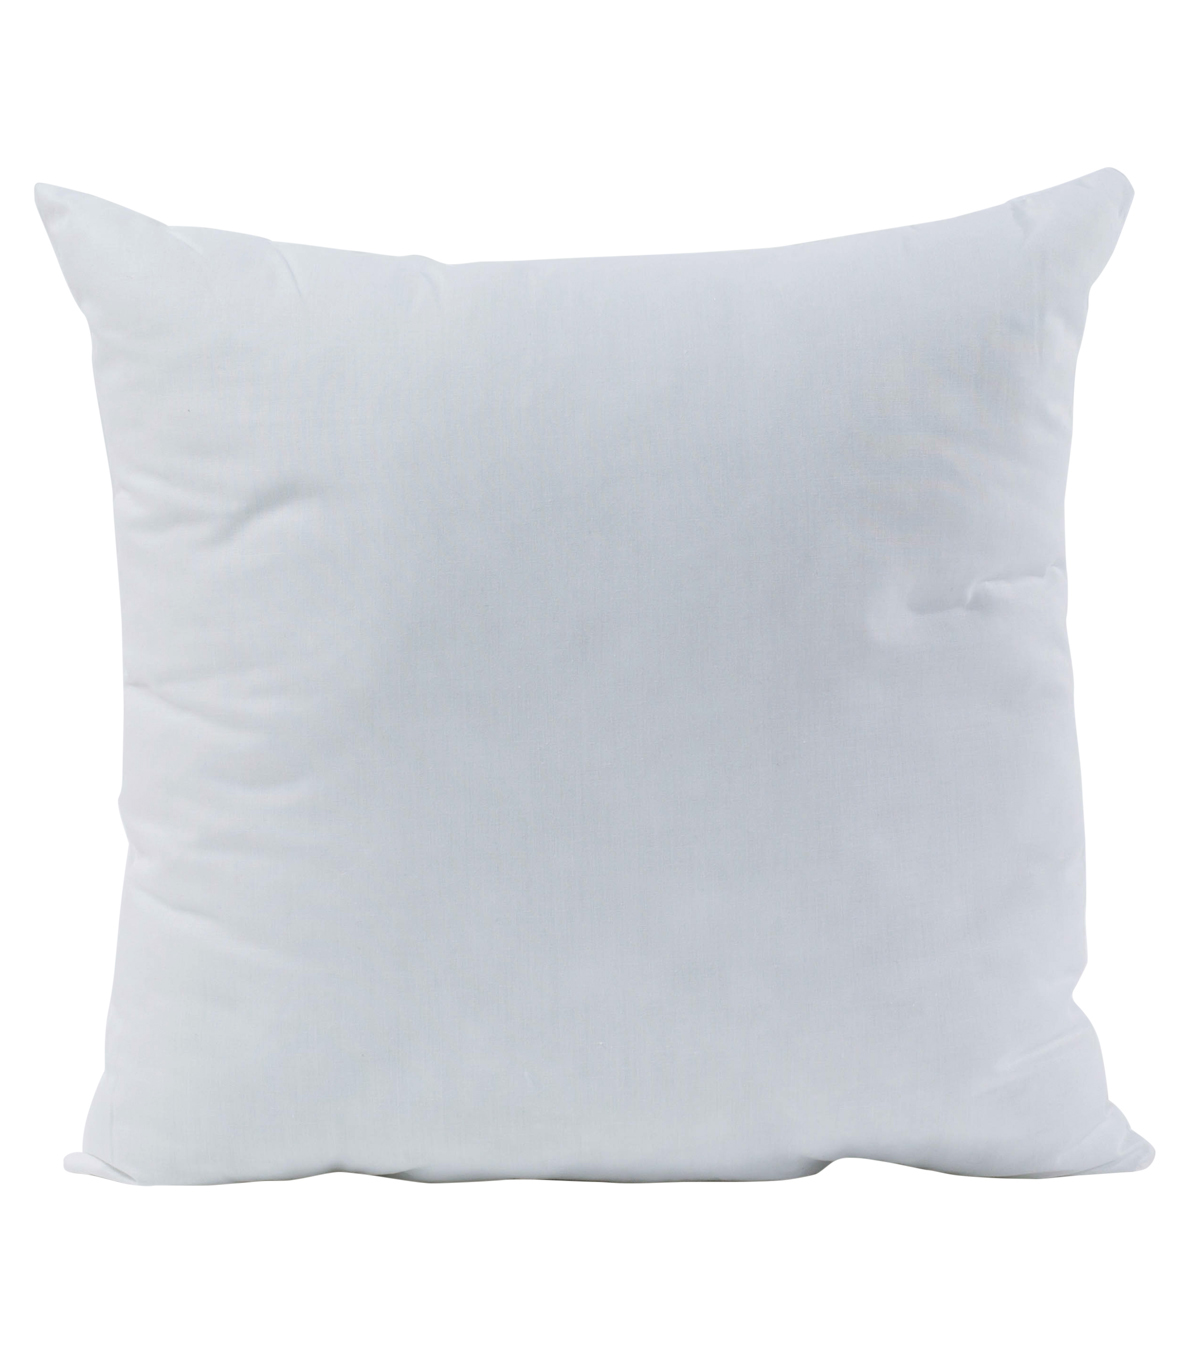 Soft N Crafty Premier 18\u0022 x 18\u0022 Pillow